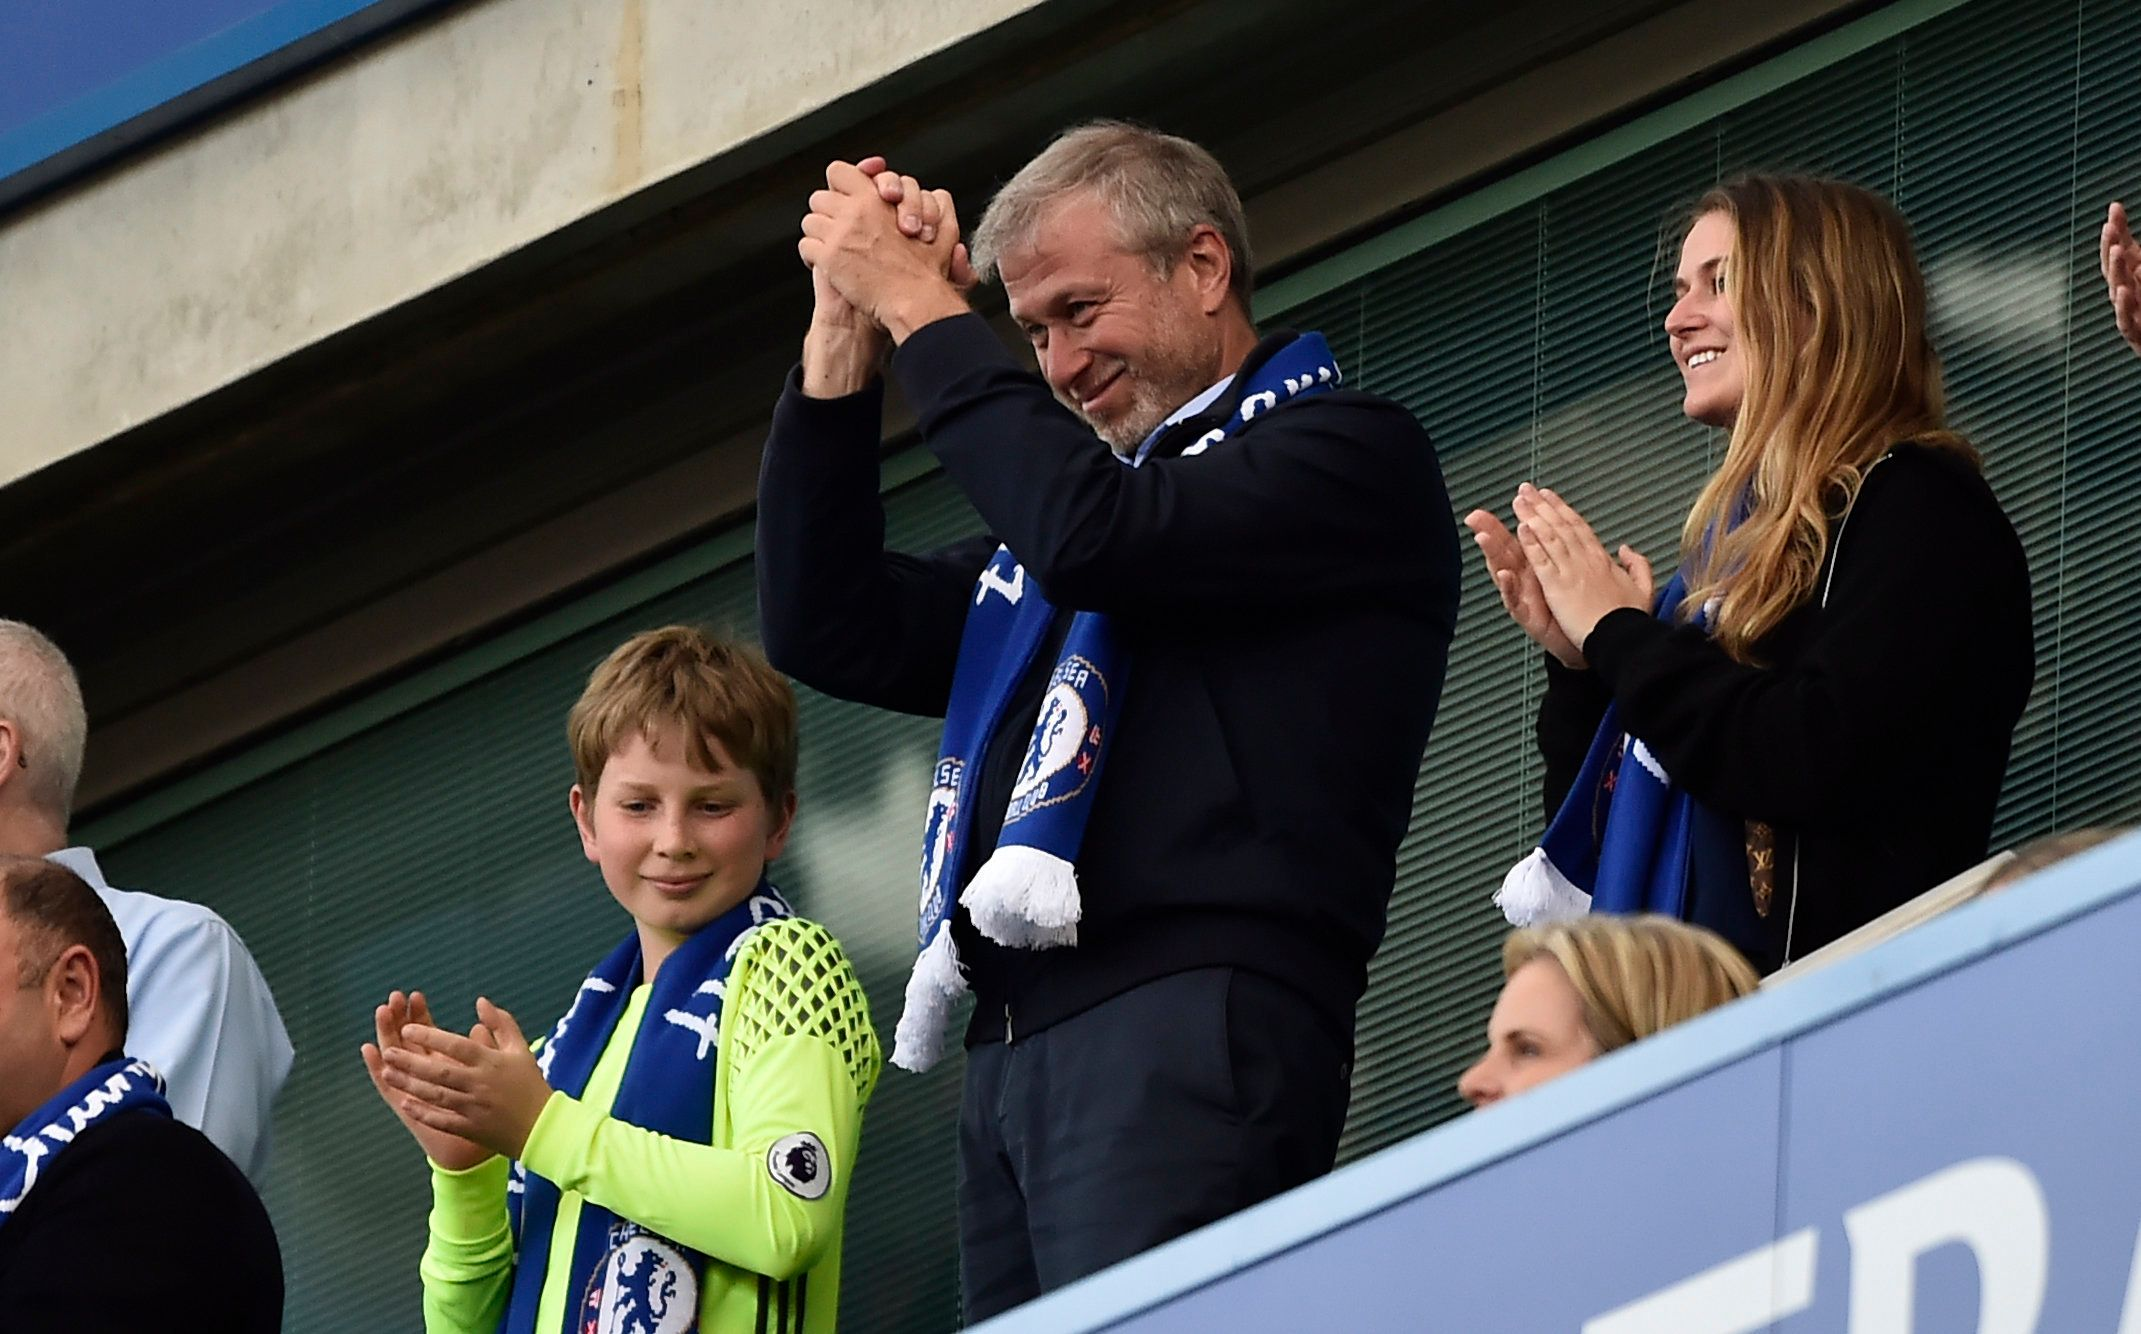 Abramovich 'granted Israeli citizenship' as United Kingdom reviews oligarch visas